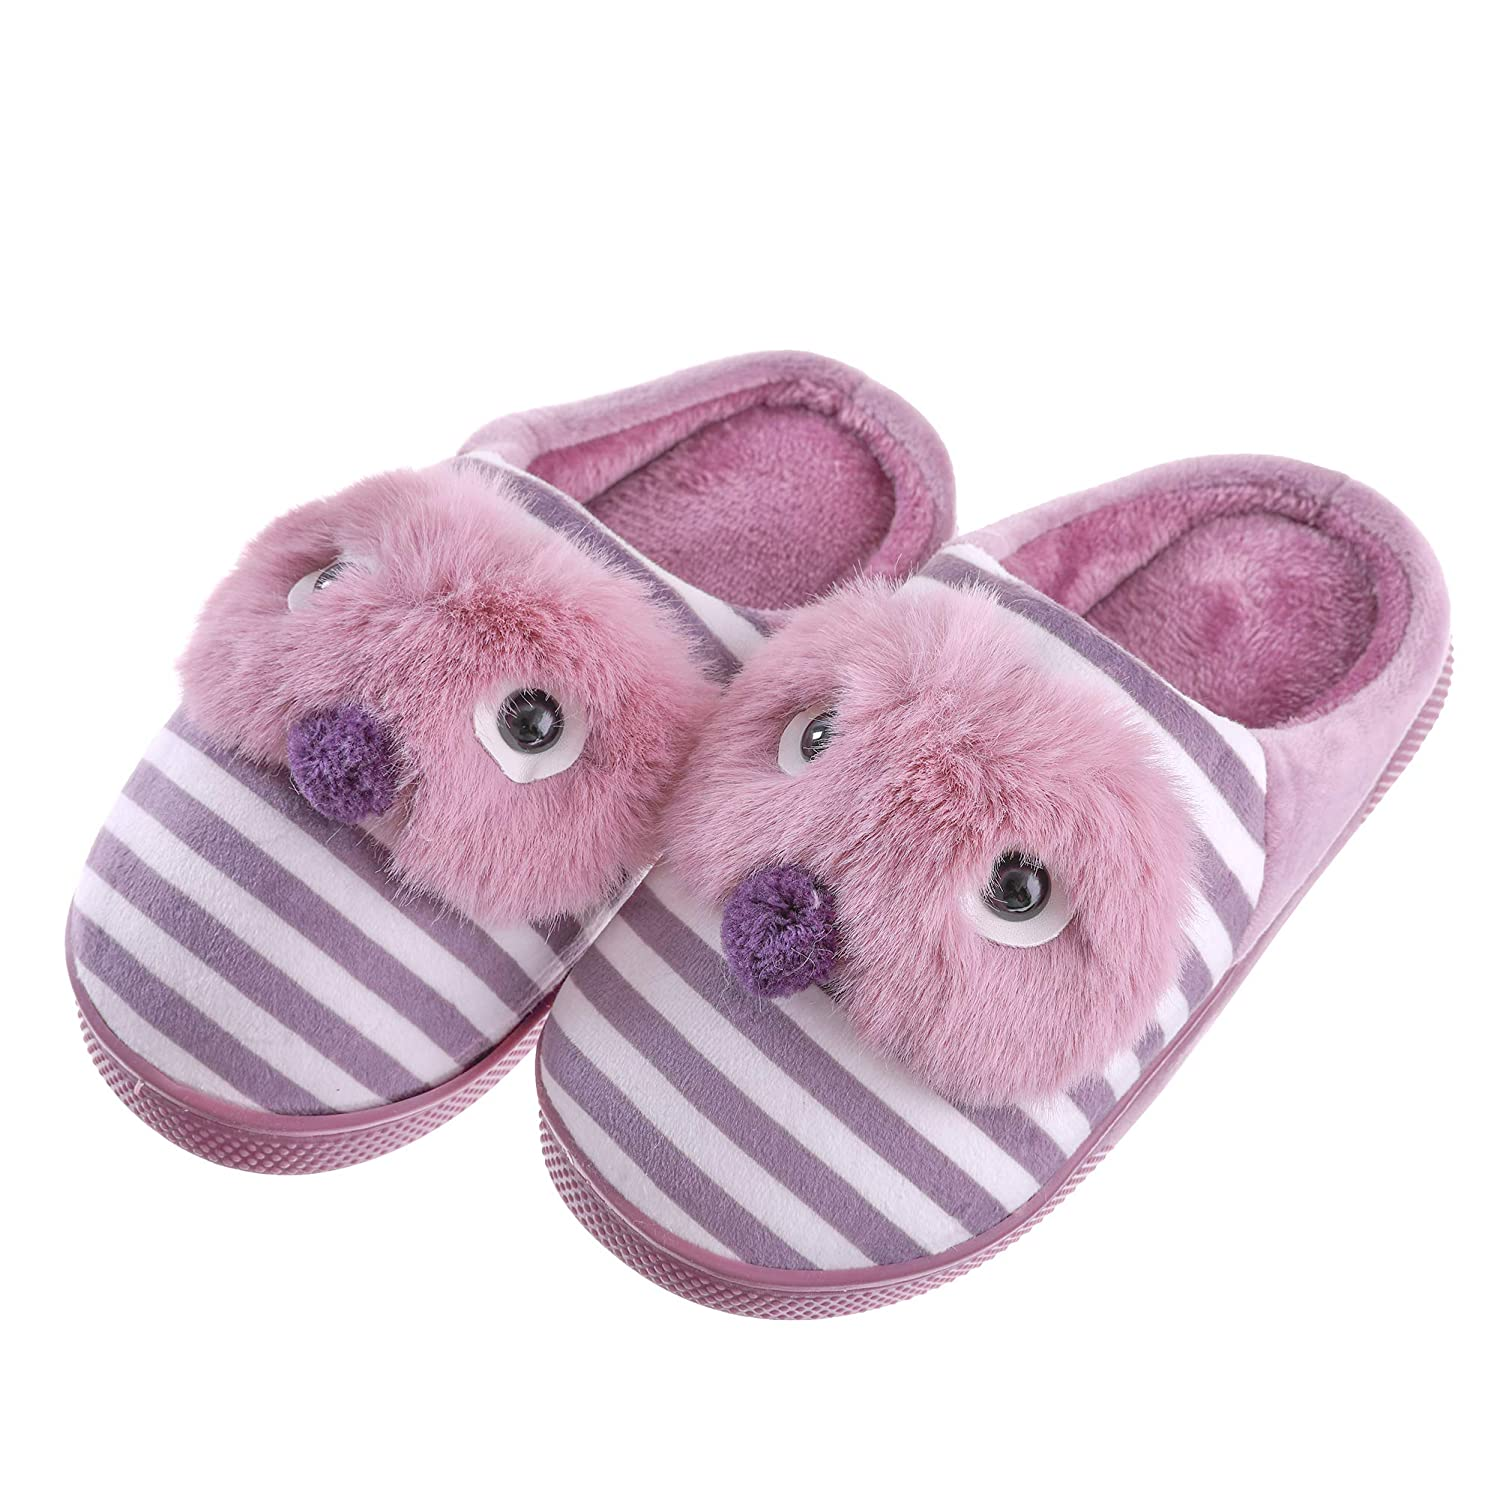 SCOWAY Toddler Kids Boys Girls Slippers Cute Cartoon Animal Soft Warm Non-Slip Winter Indoor House Shoes